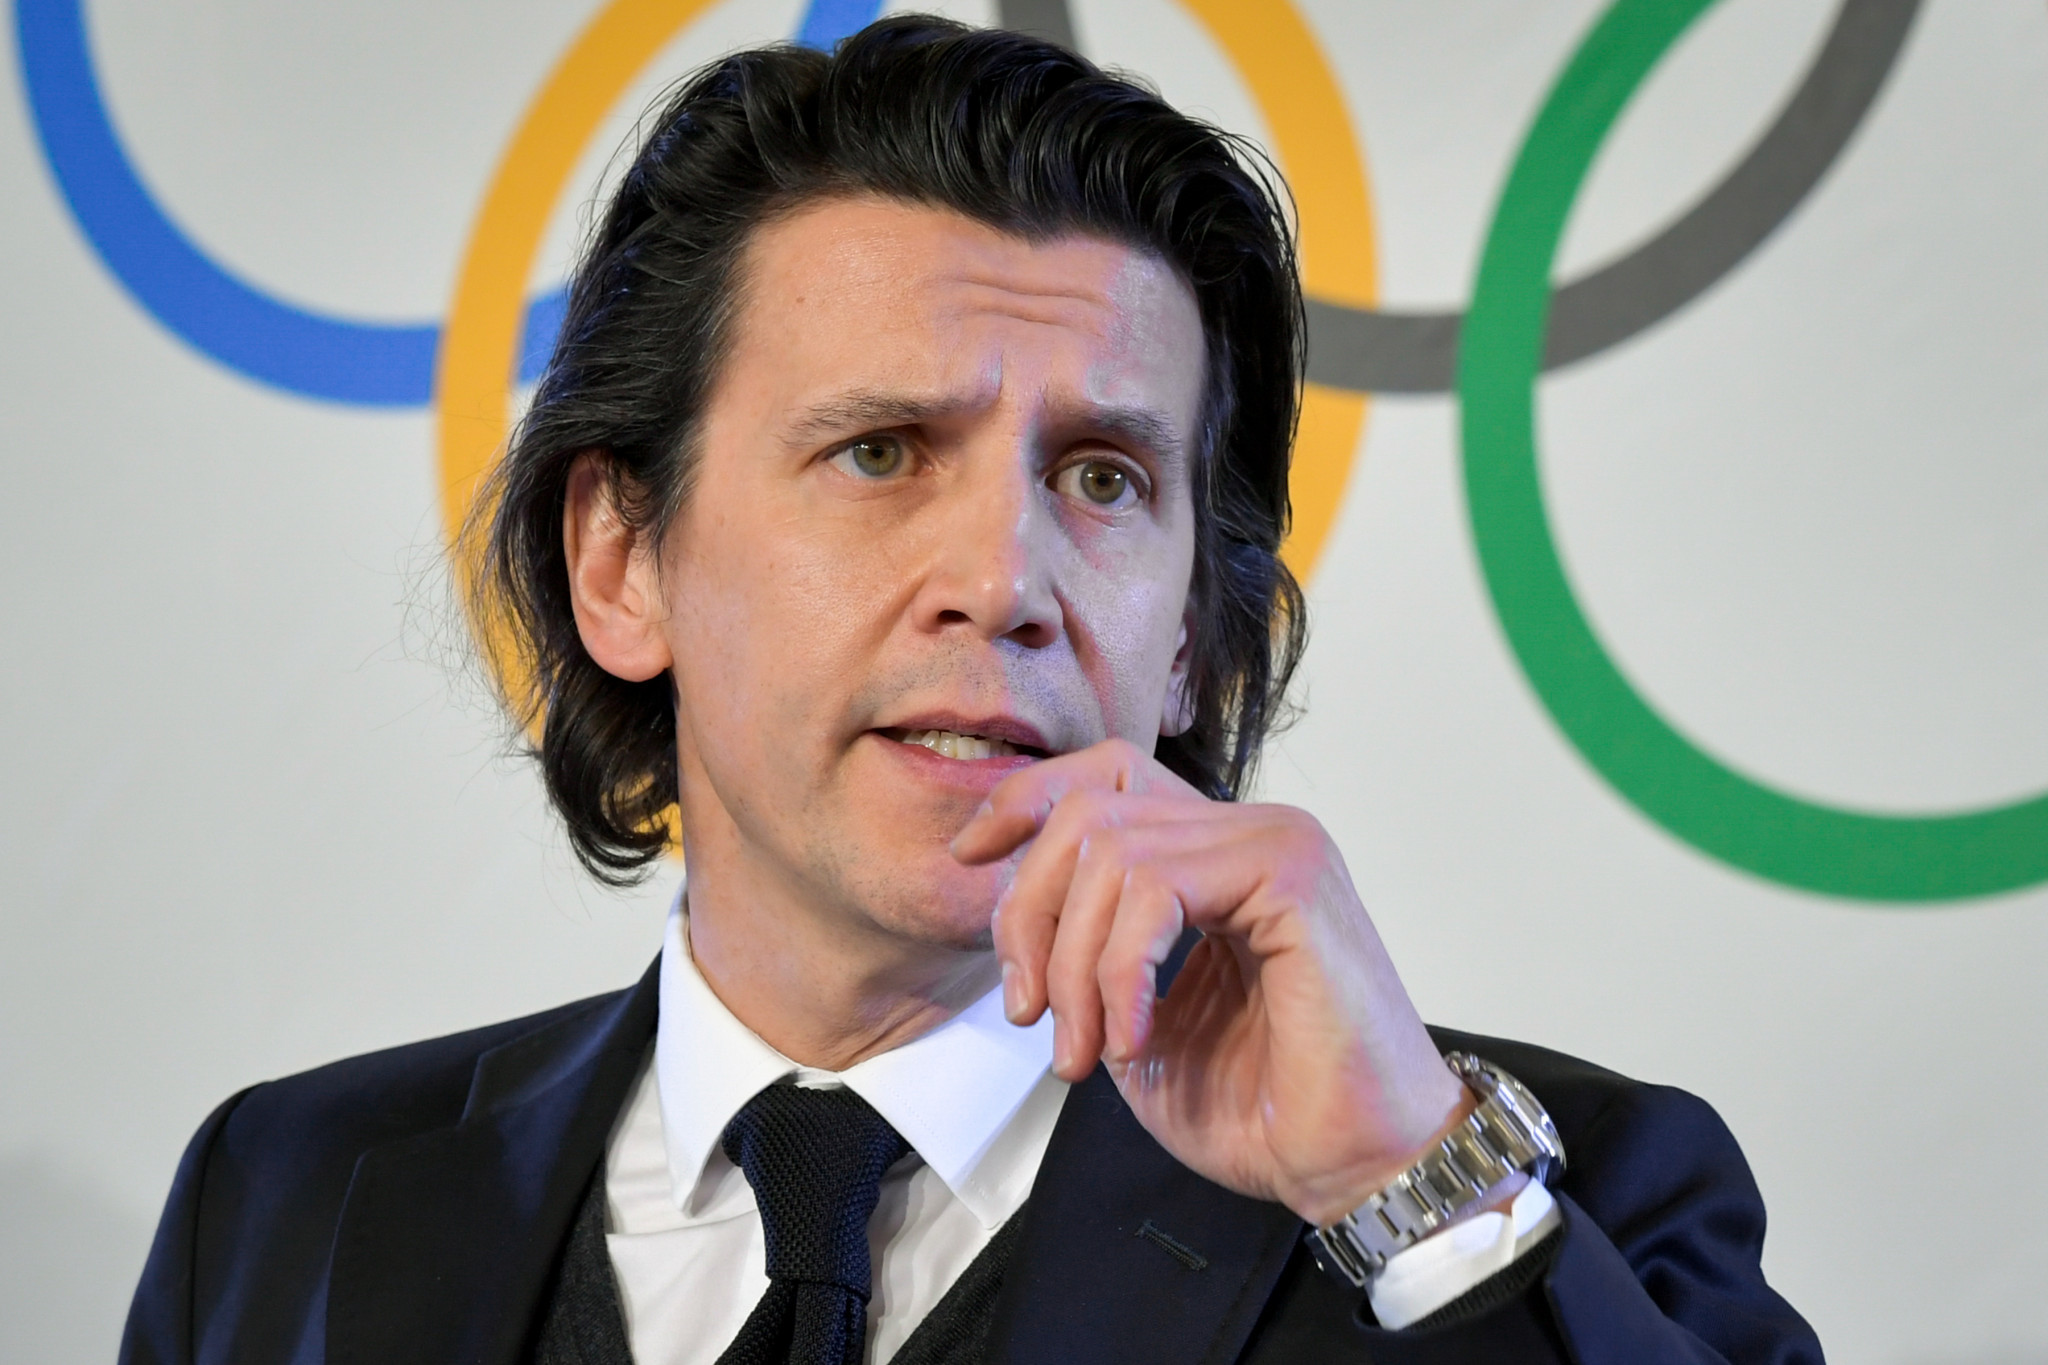 IOC Executive Director for Olympic Games Christophe Dubi has reportedly confirmed that Stockholm is still a candidate to host the 2026 Winter Olympics ©Getty Images